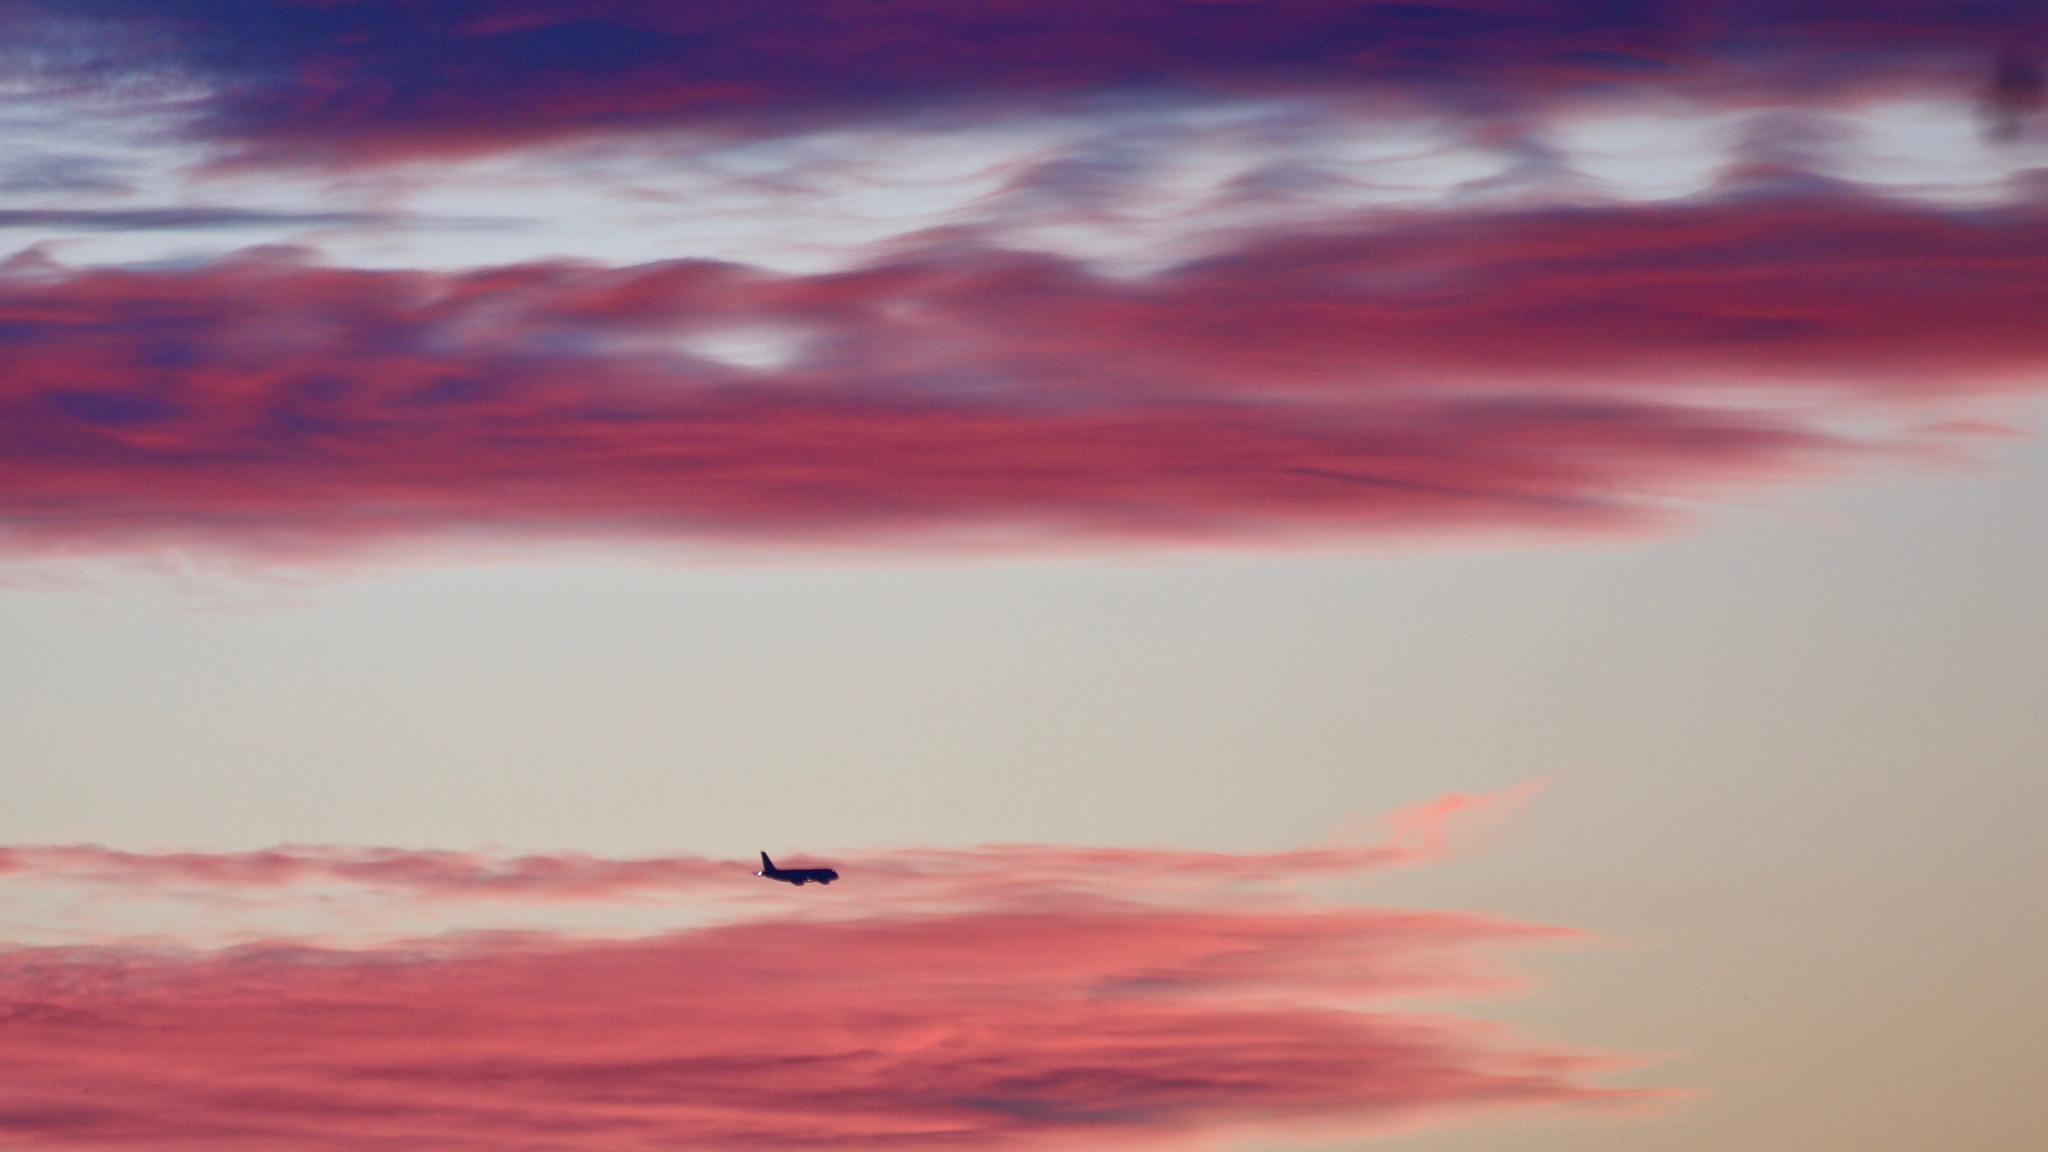 A plane approaching Heathrow earlier this evening by Geraint Roberts